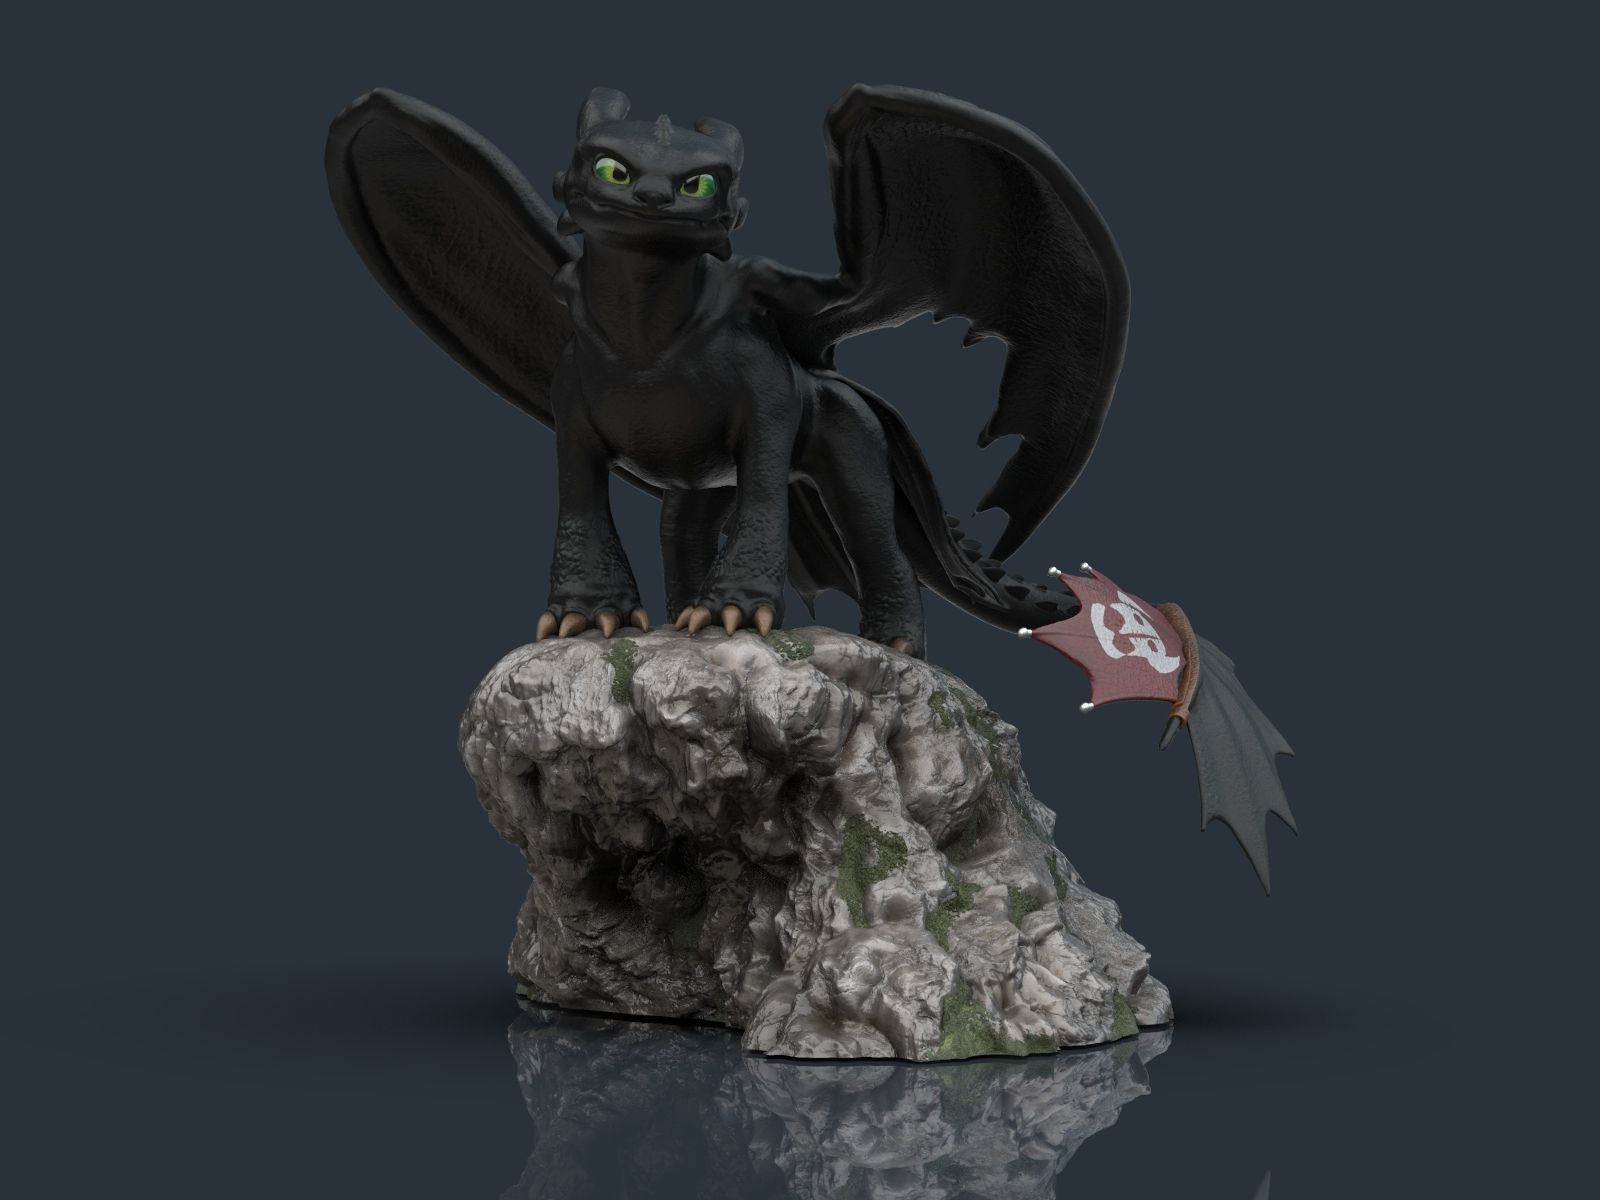 vista 01.jpg Download STL file Toothless - How to train your dragon for 3d print model • 3D printable model, Ignacioabusto